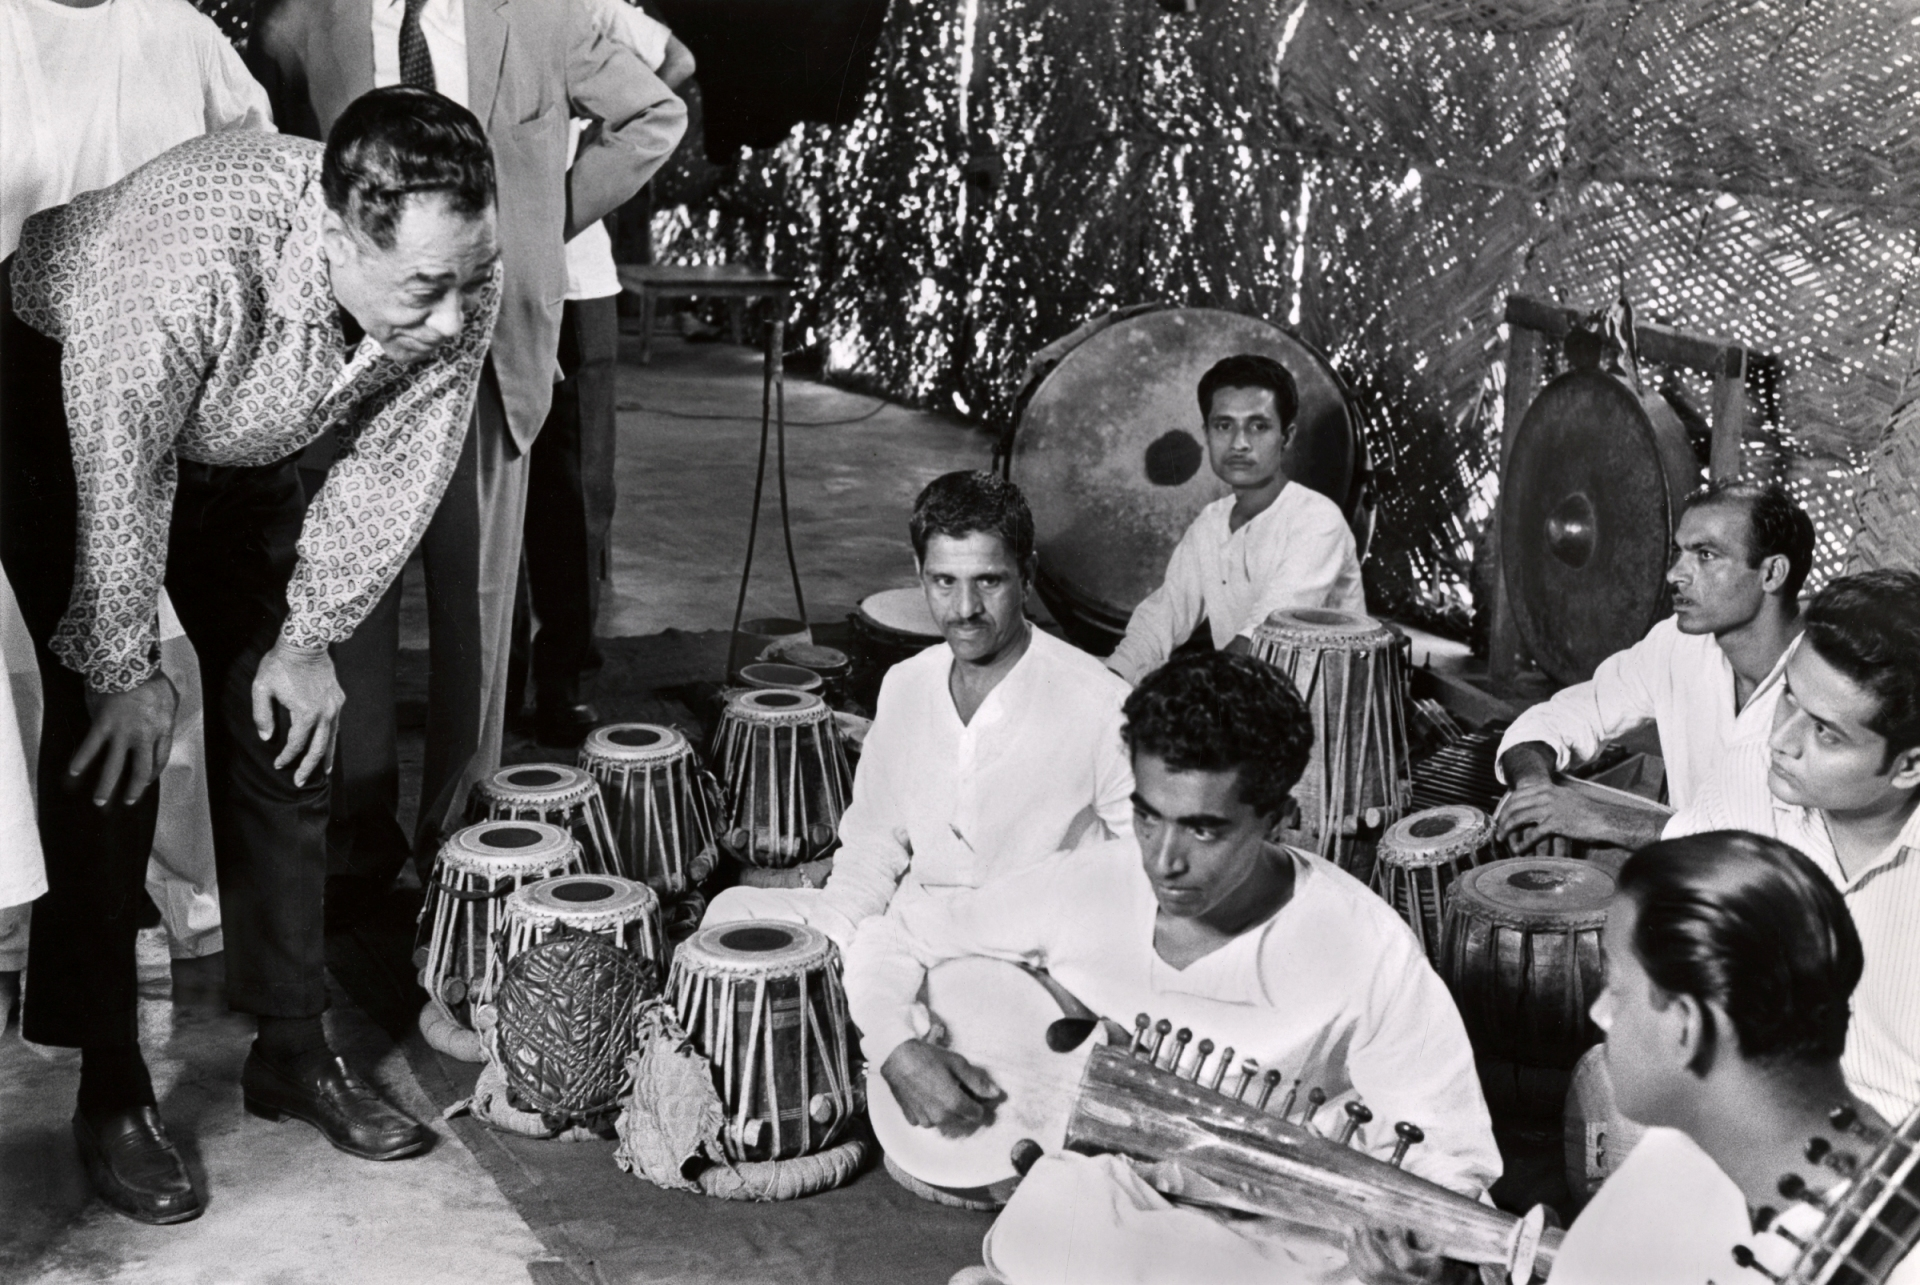 NMAH Archives Center Duke Ellington Collection Collection No. 301 Series 7, Box 4, Folder 24, Item * 8cc Duke with group of Indian musicians; India.